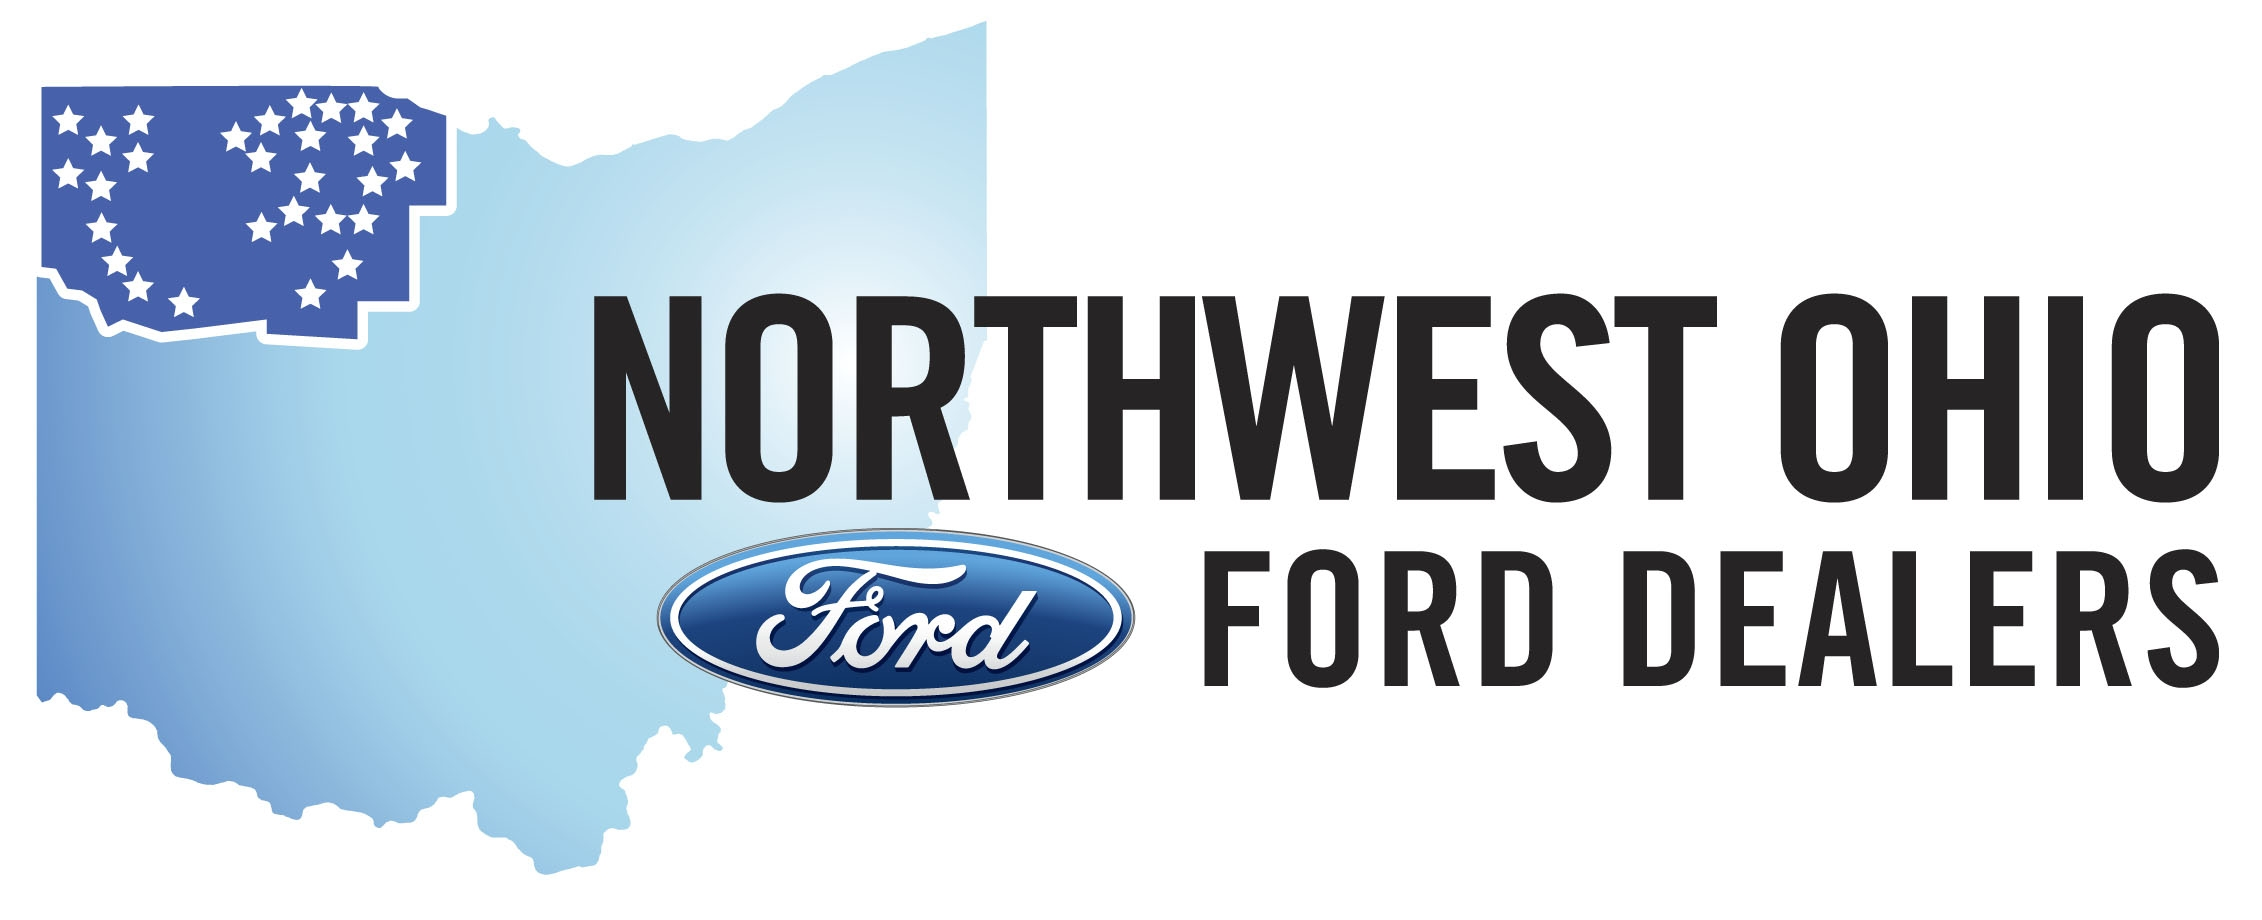 NW Ohio Ford